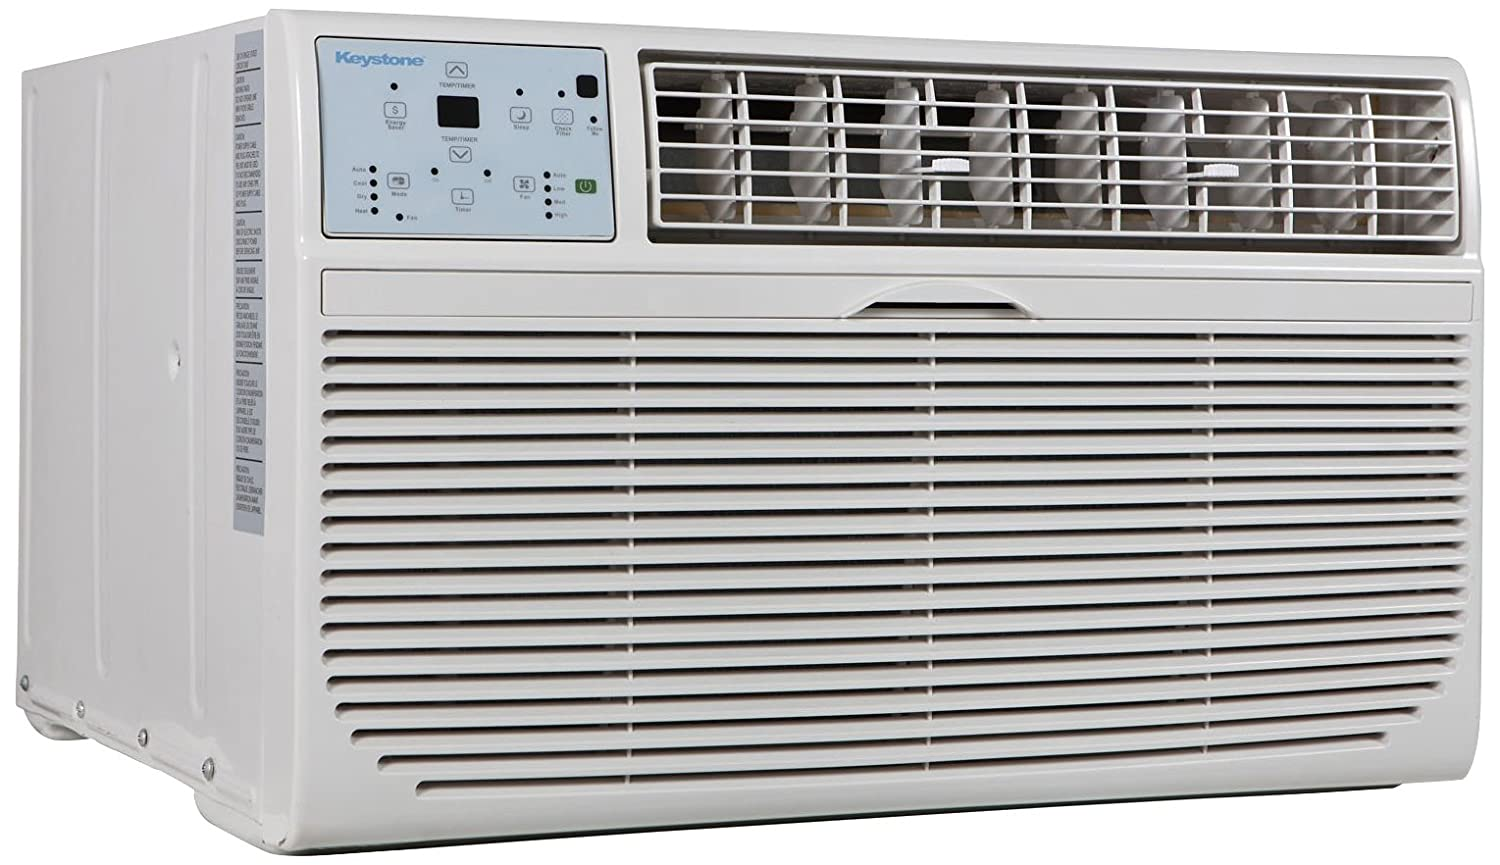 Keystone KSTAT10-2C 10000 BTU 230V Through-The-Wall Air Conditioner with Follow Me LCD Remote Control